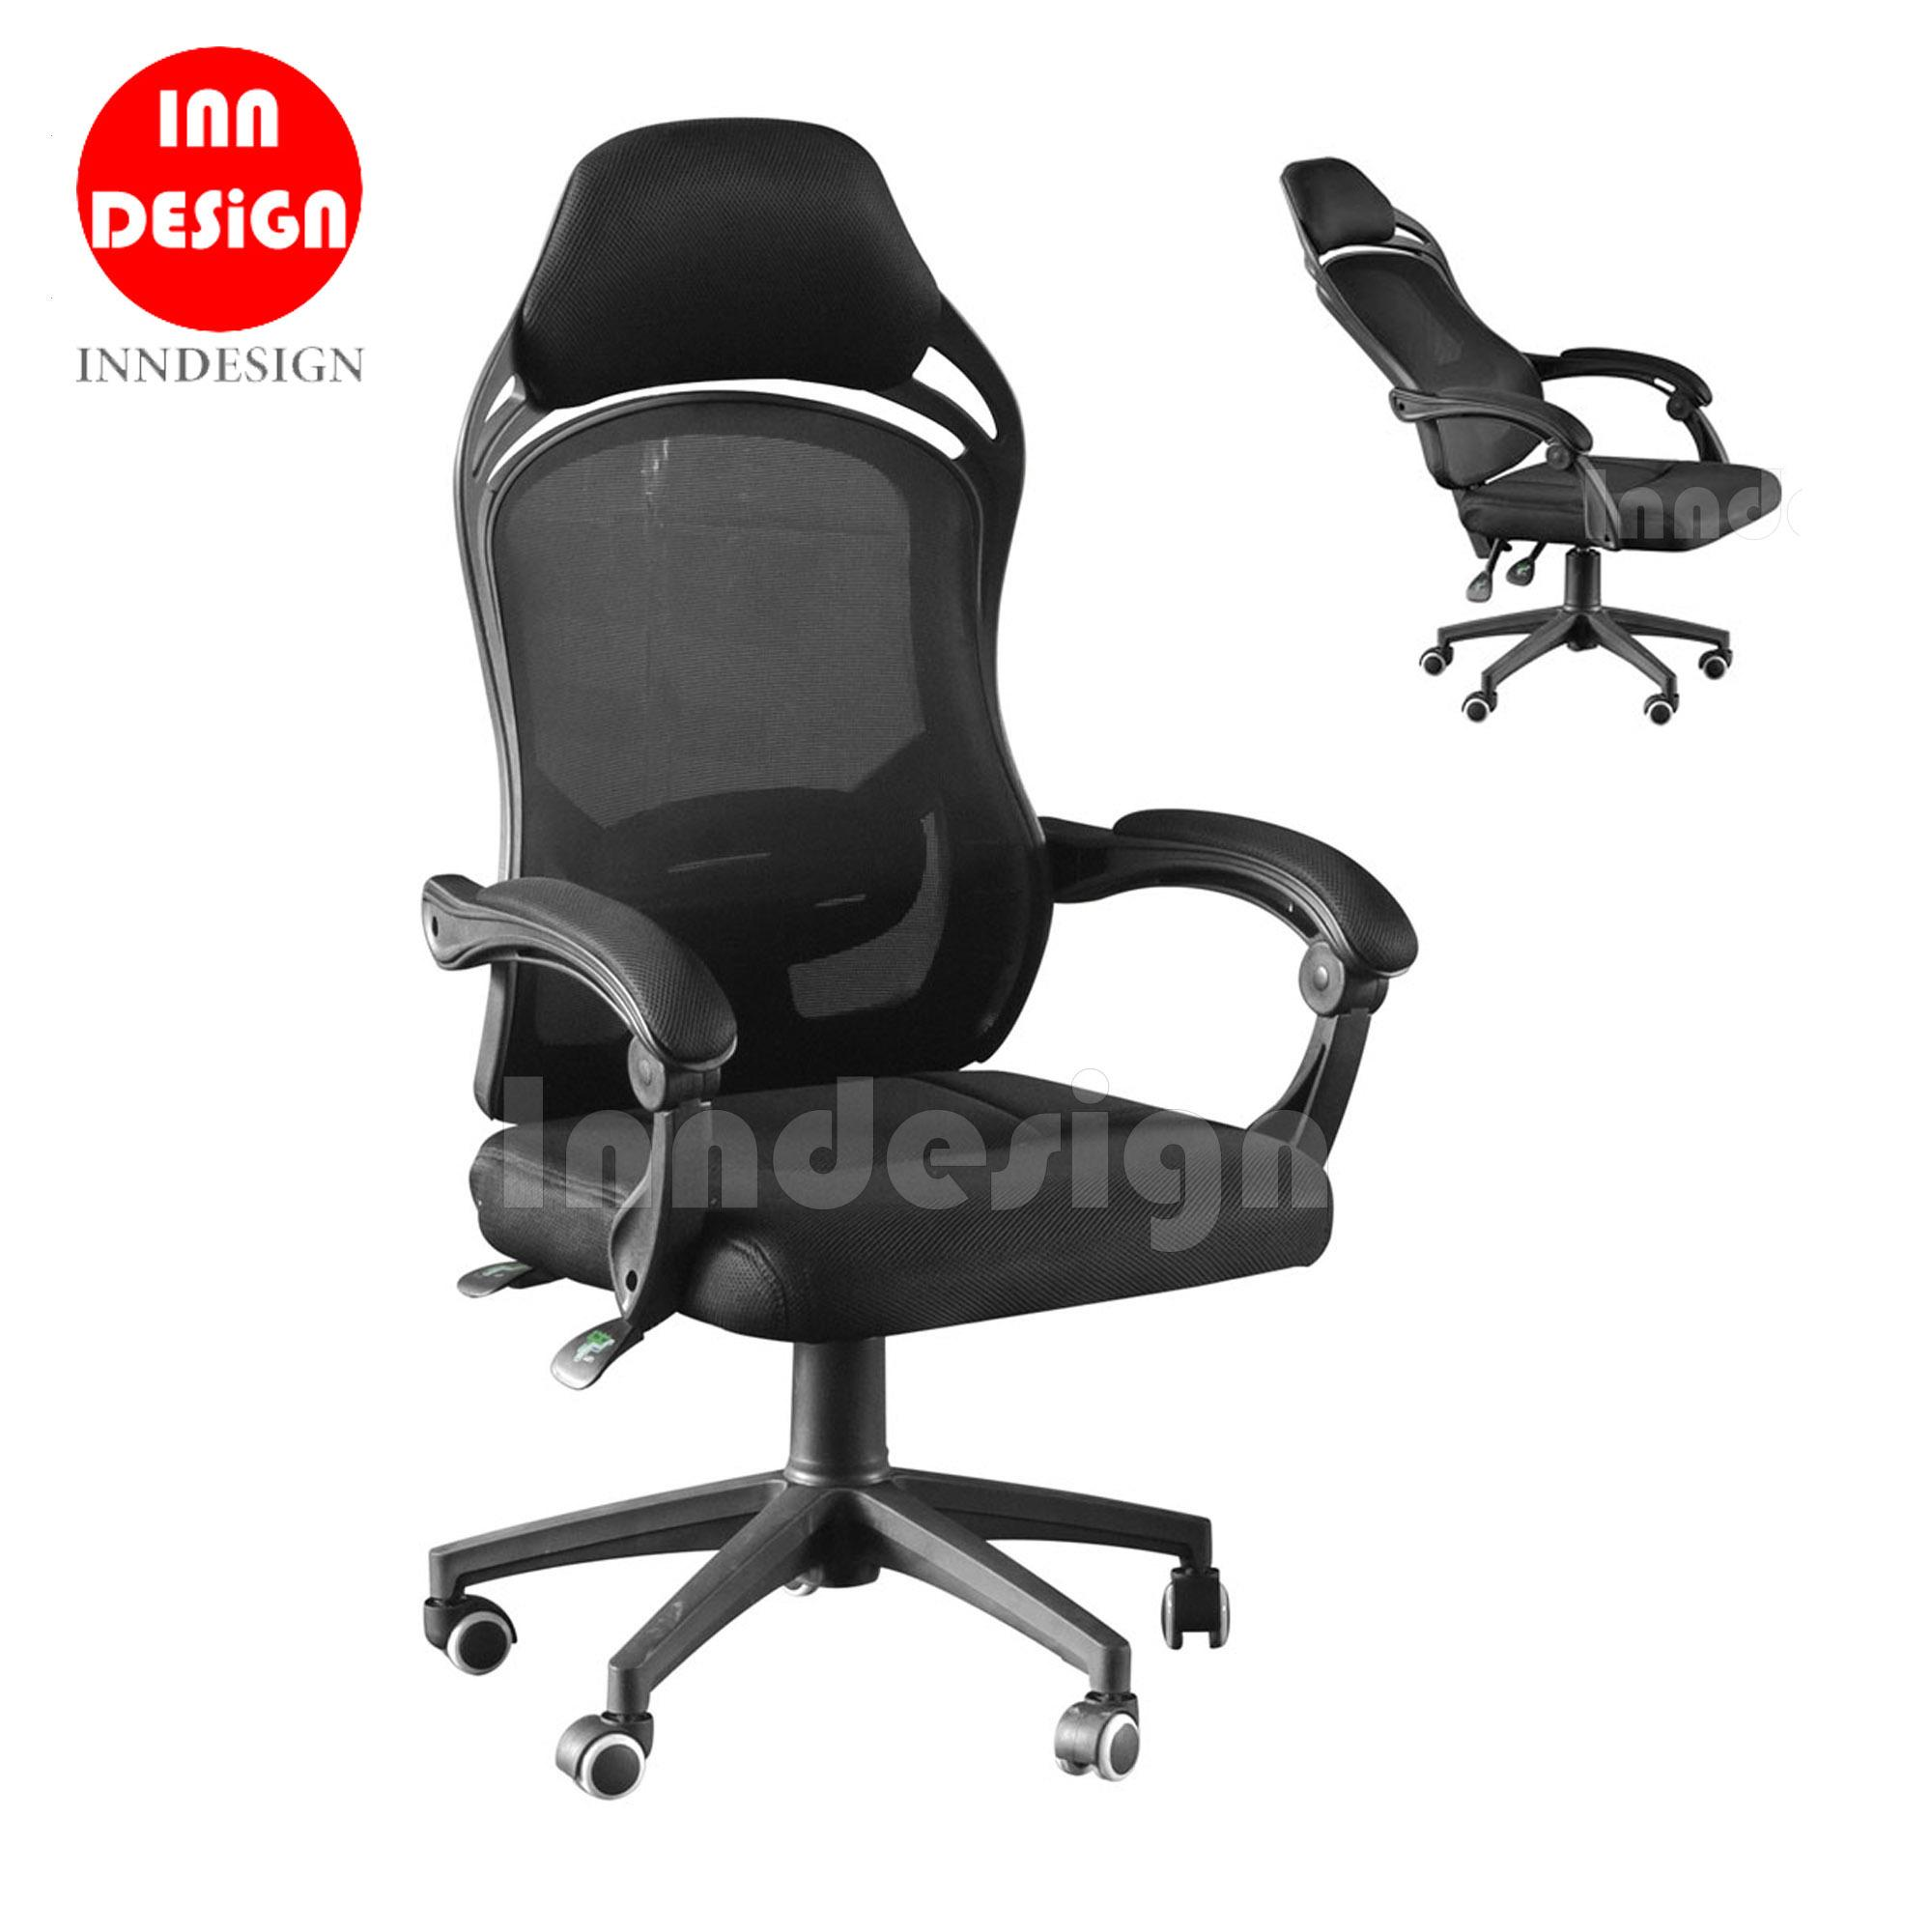 Don Office Chair / Boss Chair (90 Degree Recliner)